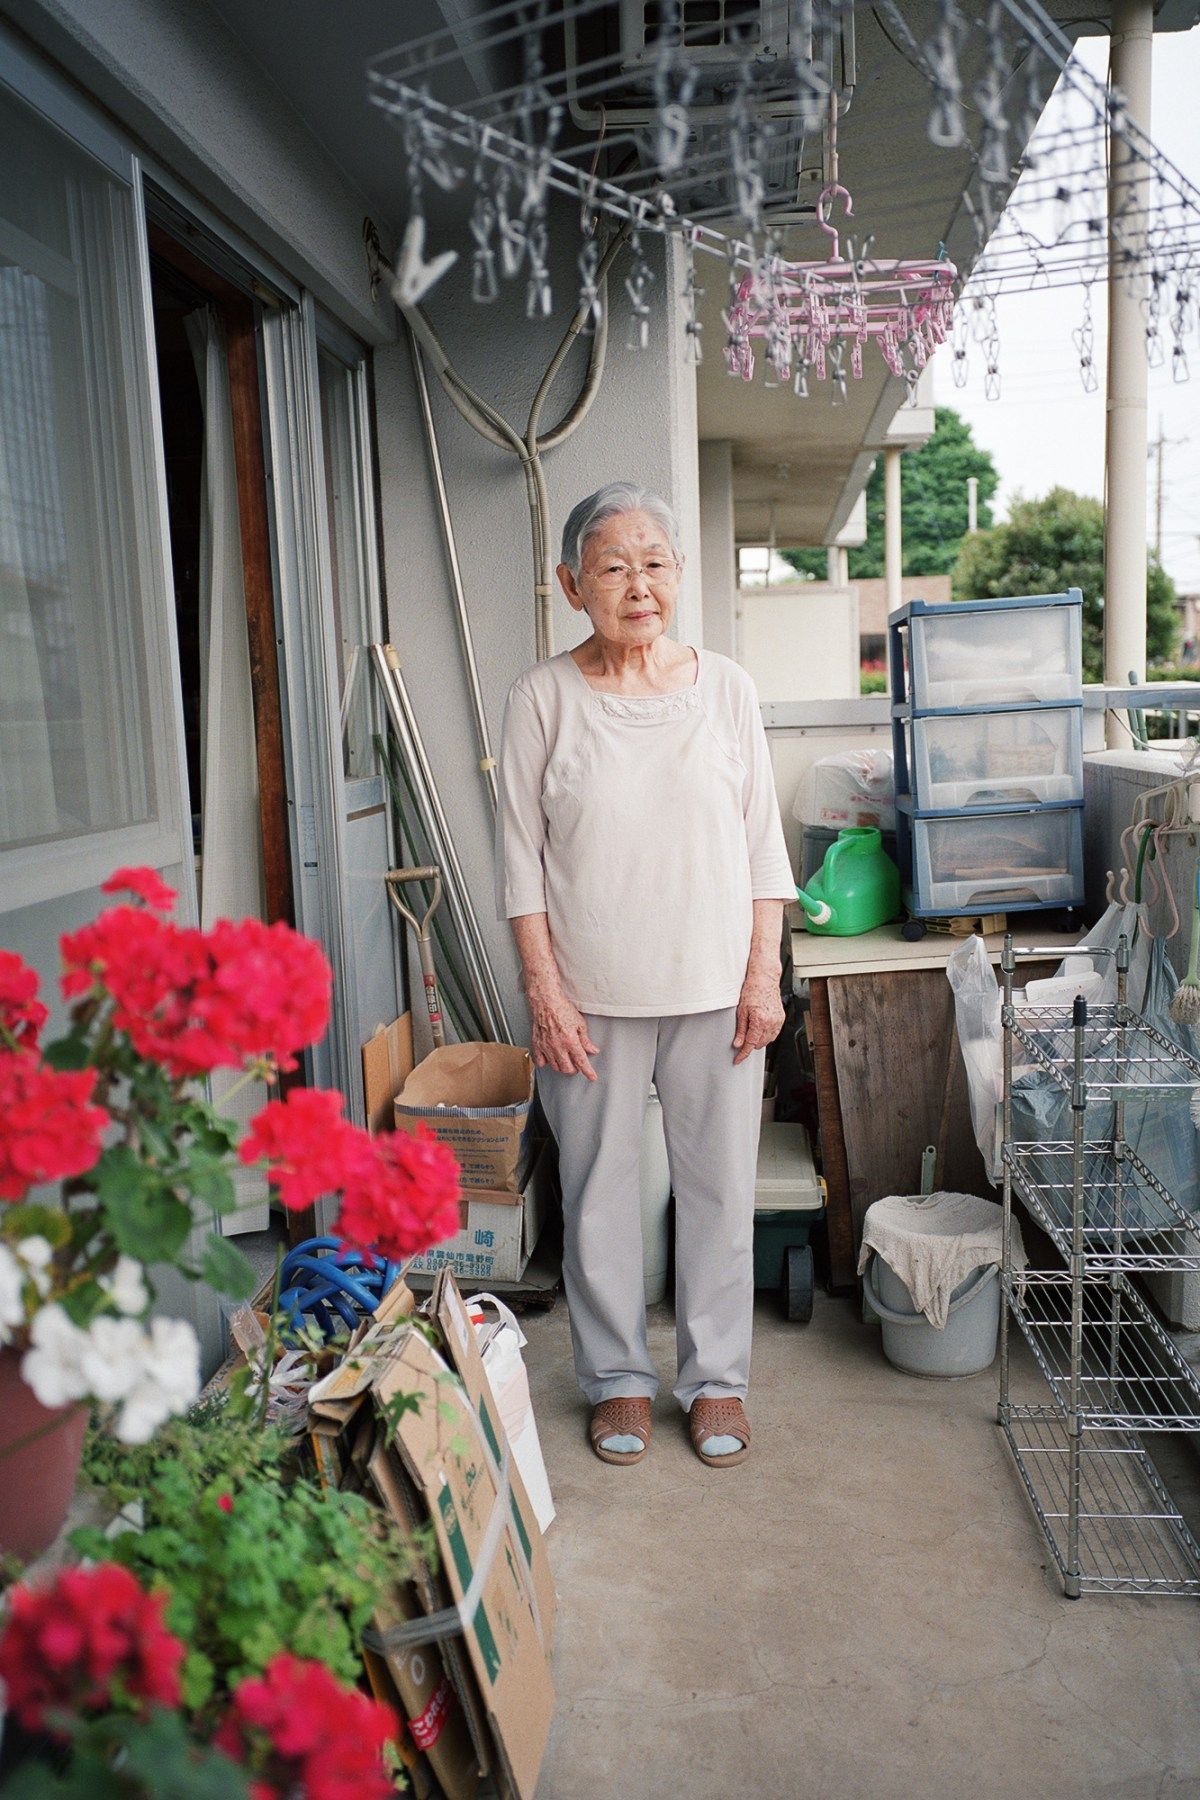 """Fusa Iwai (85) entered a military hospital training school when she graduated from junior high school in 1943. When she started at the training school, she would have to take care of and look after wounded soldiers who were returning from the war. As days passed, the bombing by the U.S. army where she lived became a greater threat and she had to look after civilians who were injured by the bombs. """"The only way to prevent war from happening is by having a dialogue. There must have been people back in those days who felt uncomfortable with their own society and politics. But if we were to criticize the politicians, we would get caught by the secret police. Even though, we should have discussed with others, neighbors about the changes to society much much more."""" Tokyo, May 2015."""